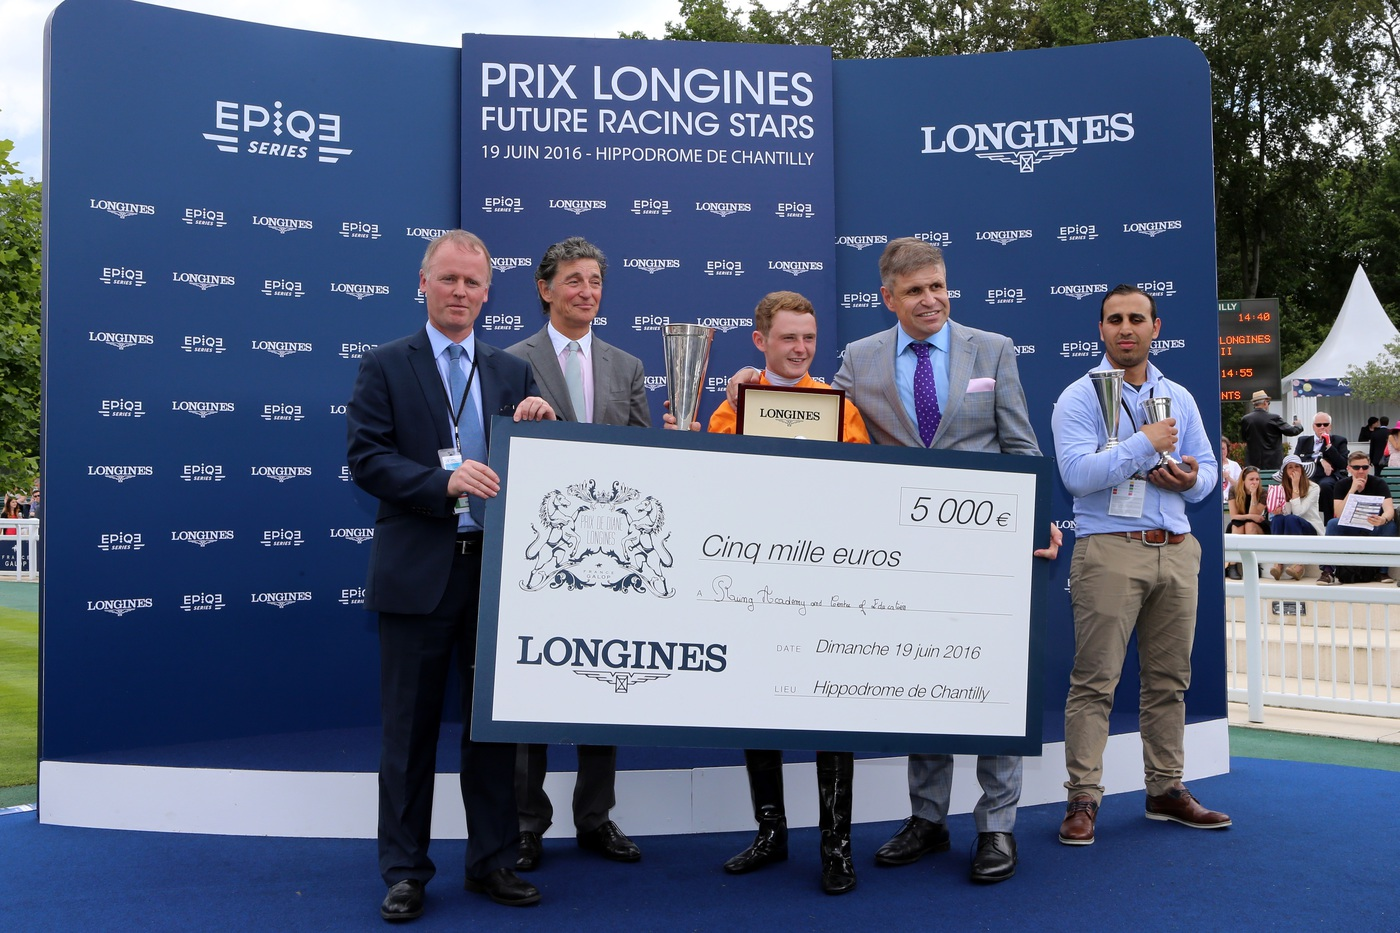 Longines Flat Racing Event: La Cressonnière is 2016 Prix de Diane Longines champion 9